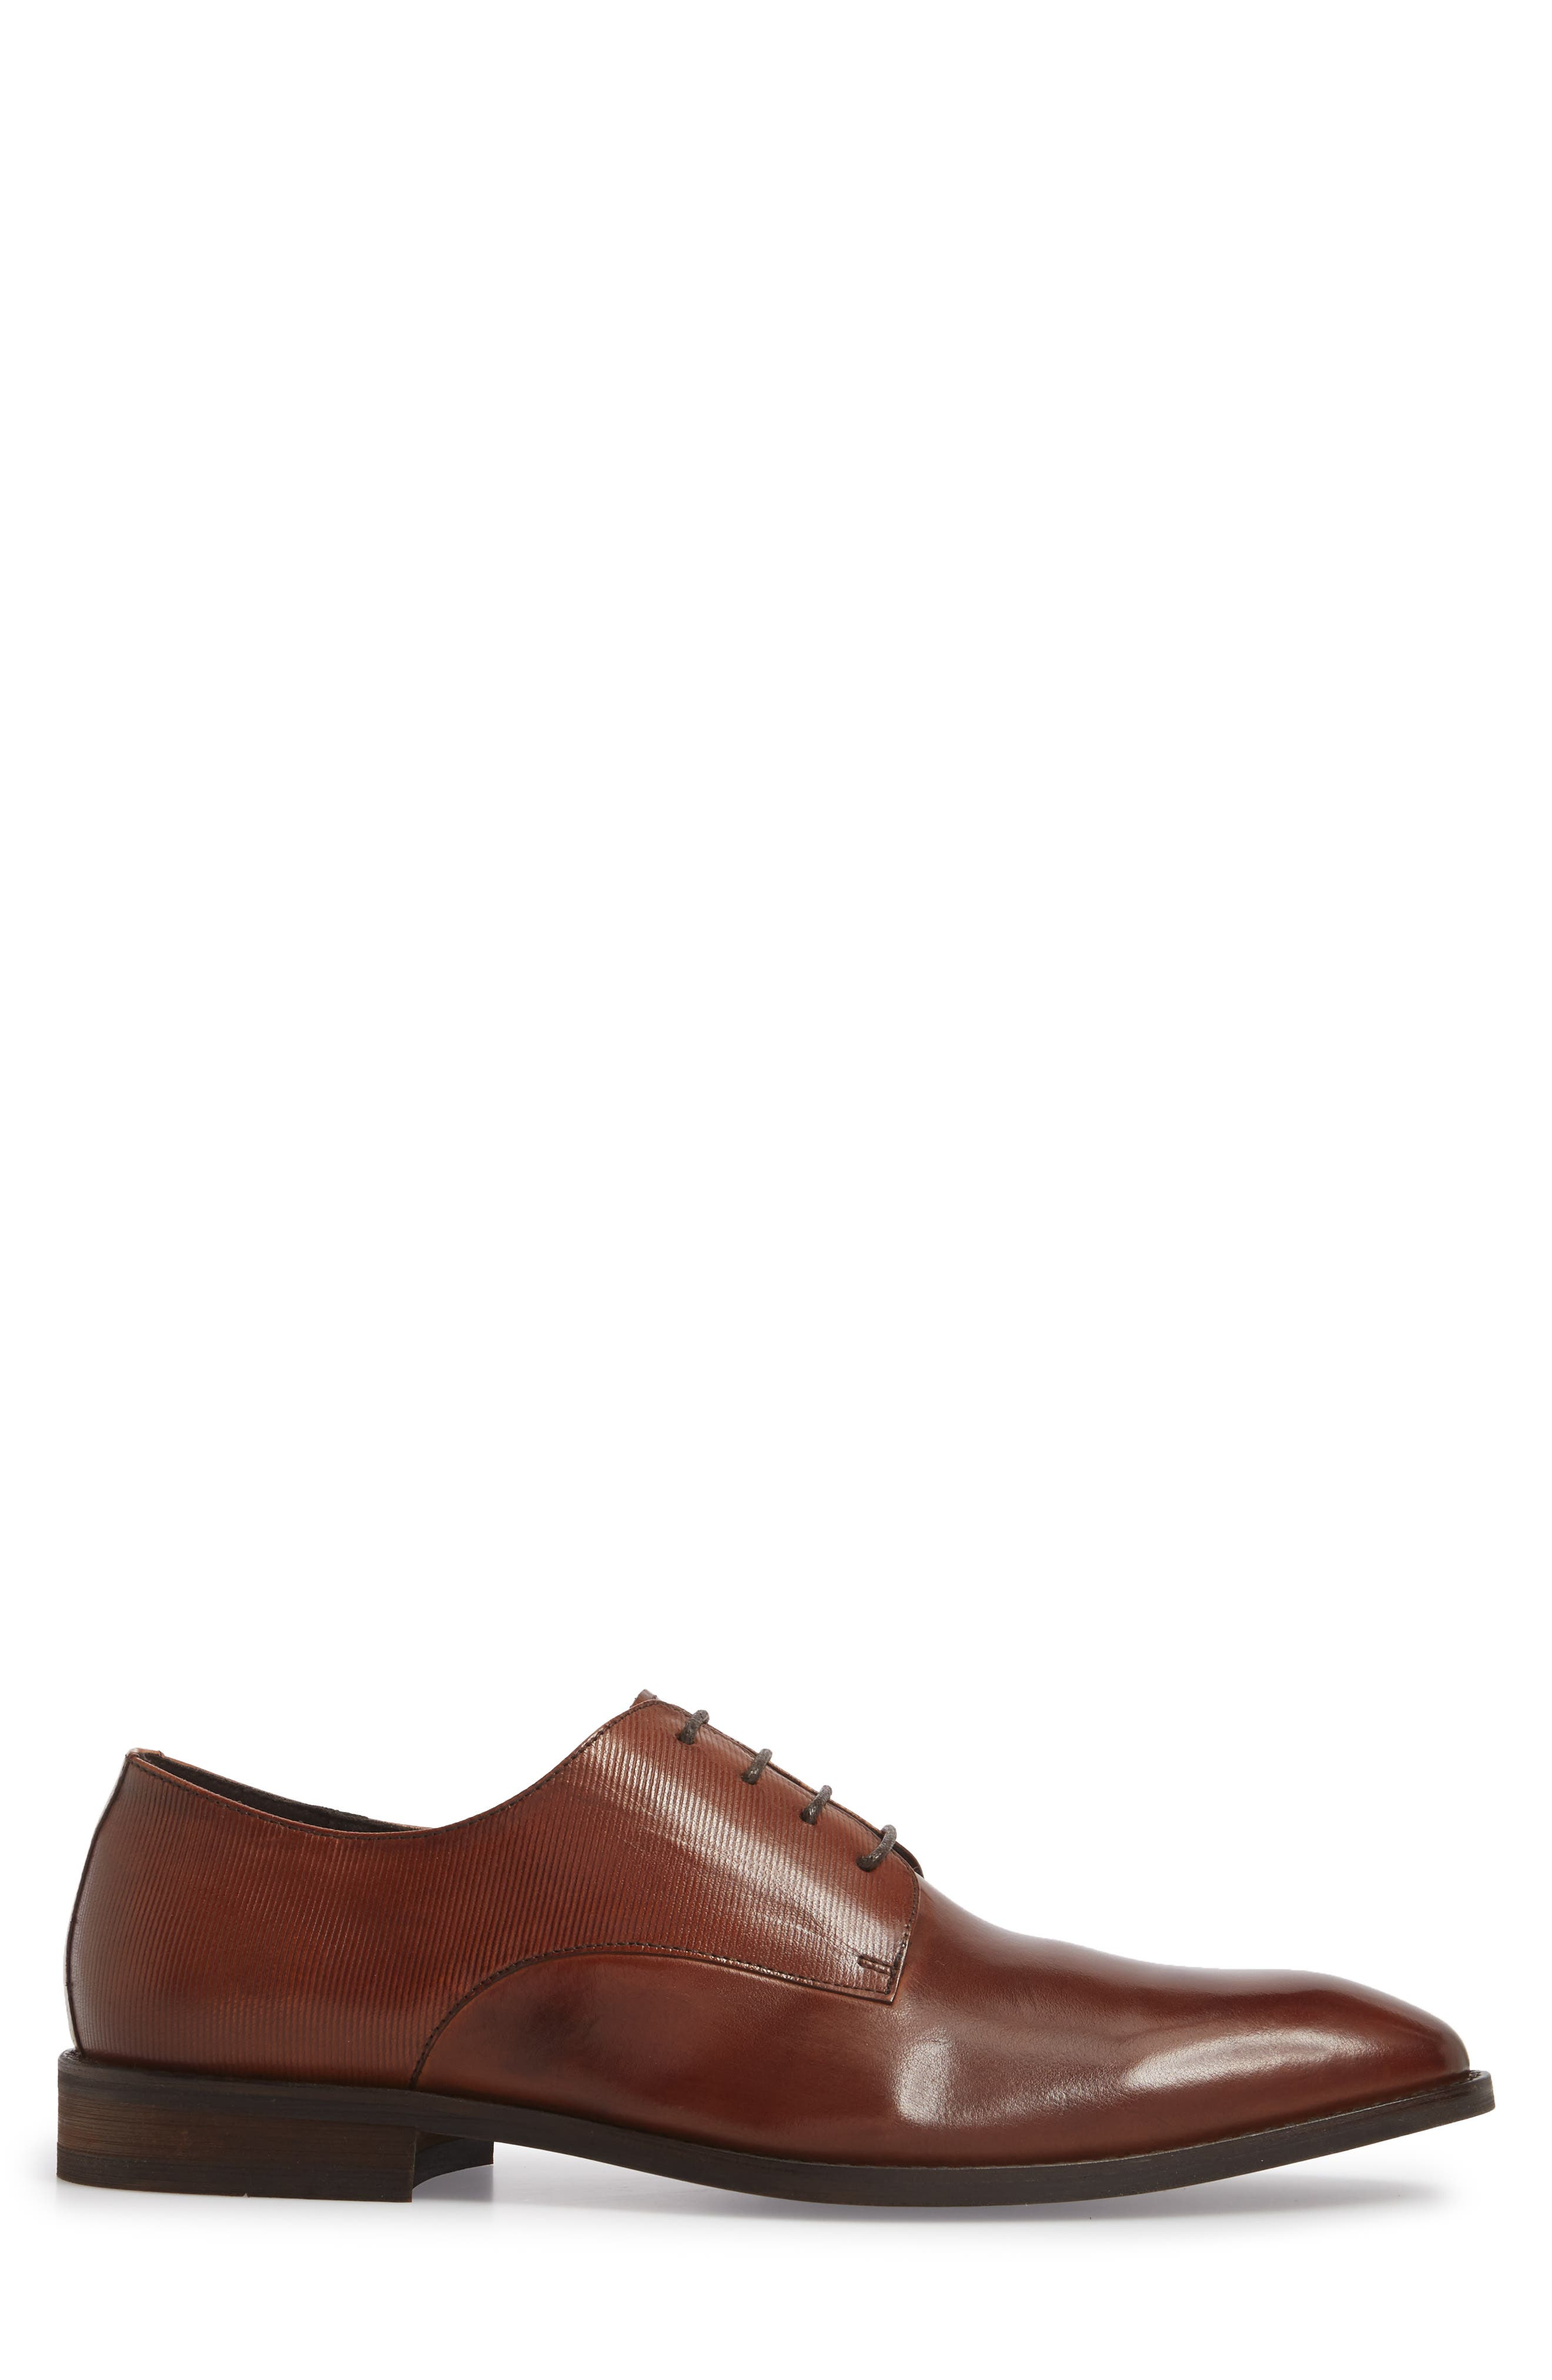 KENNETH COLE NEW YORK,                             Courage Plain Toe Derby,                             Alternate thumbnail 3, color,                             COGNAC LEATHER